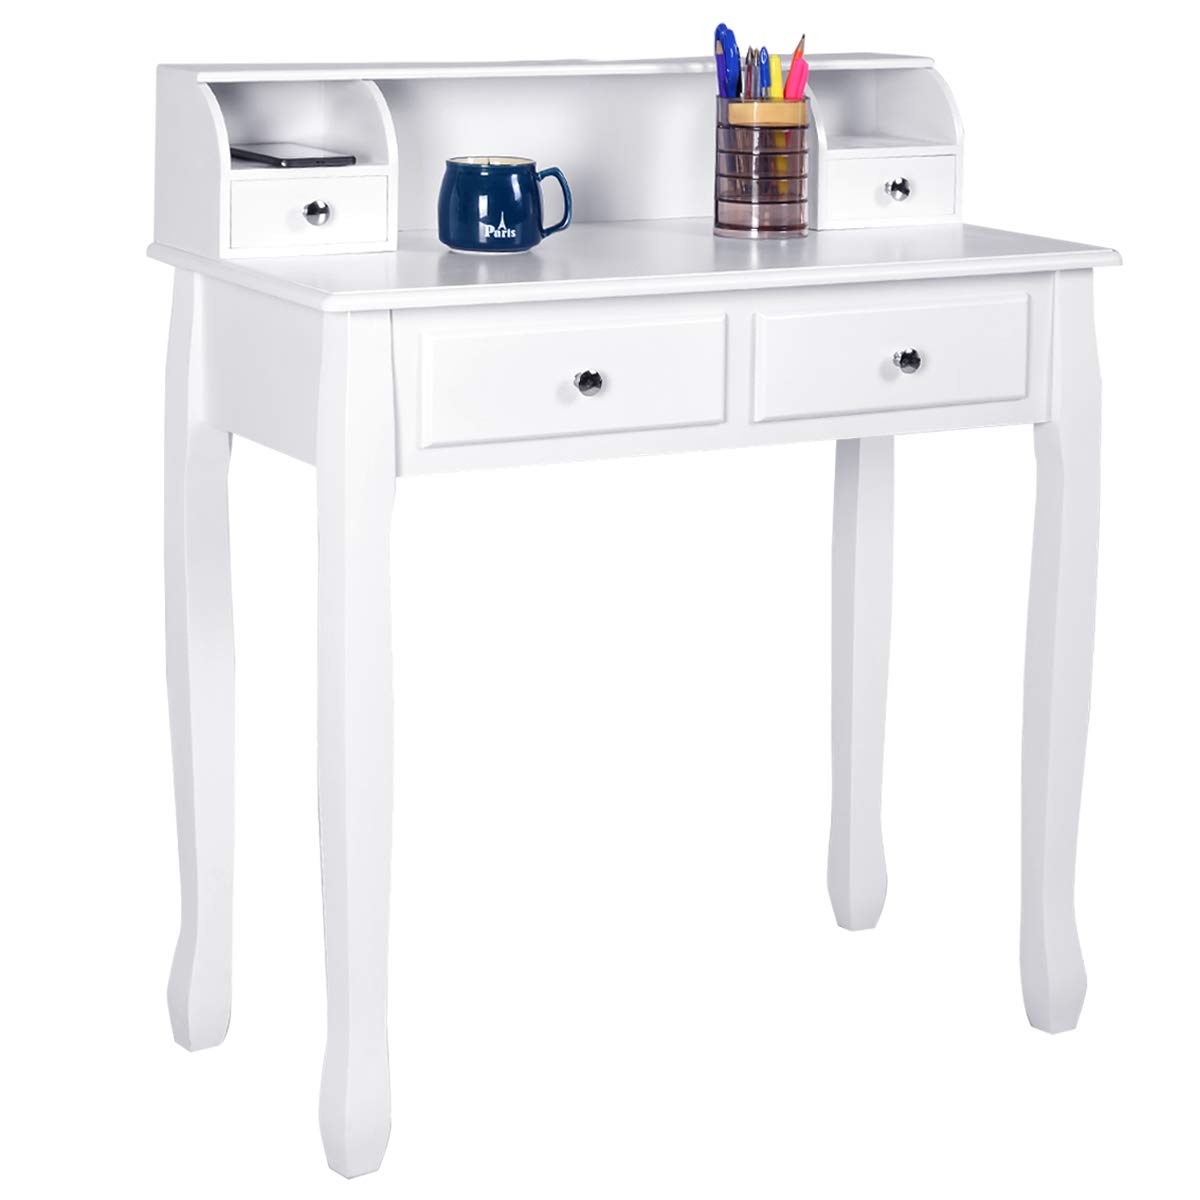 Giantex Writing Desk With 4 Drawers Removable Floating Organizer 2 Tier Mission Home Computer Vanity Desk For Apartment Small Space White